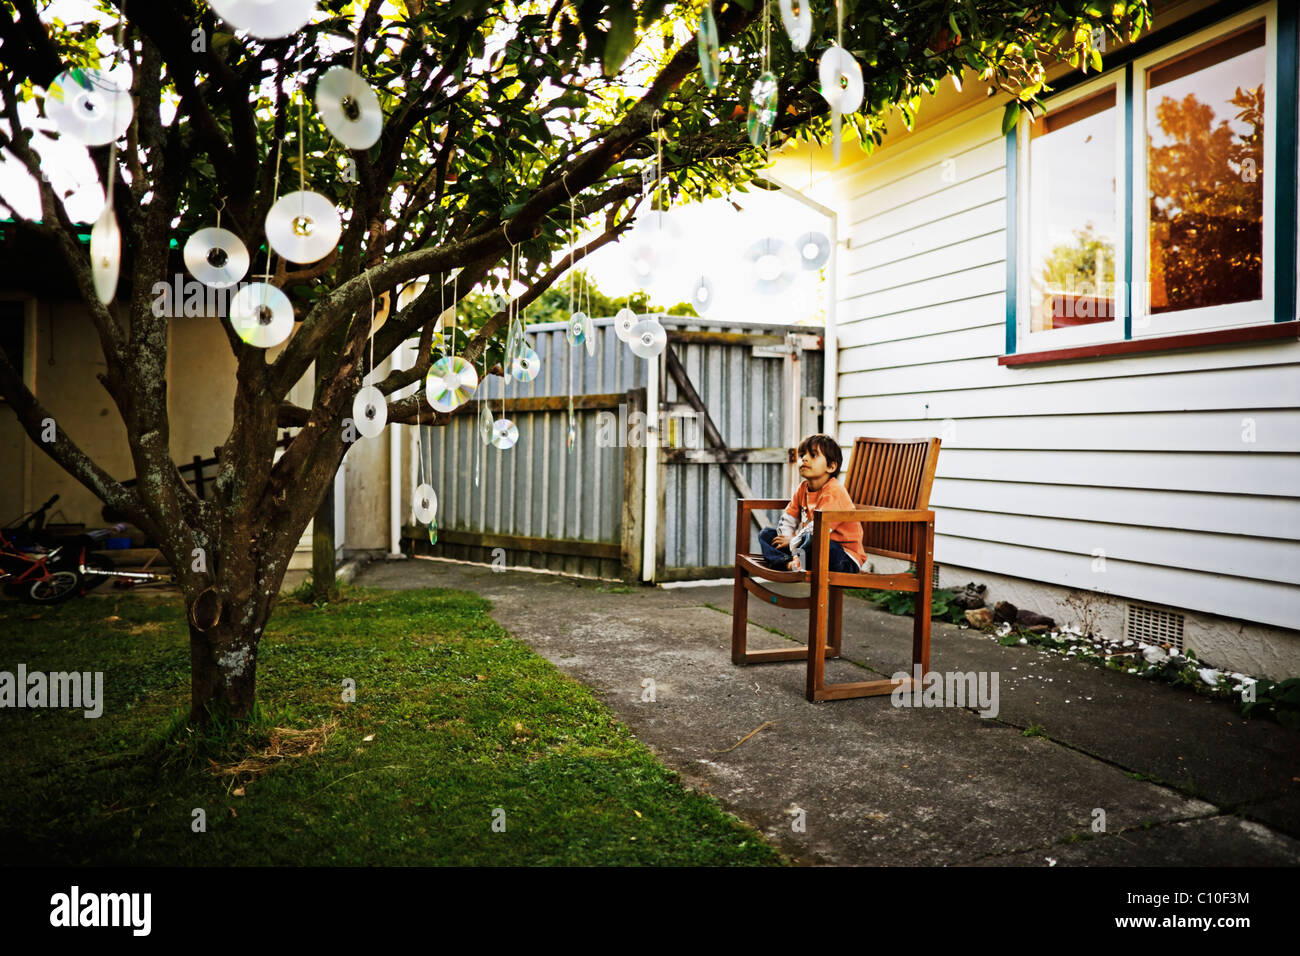 Seven year old boy watches bird-scarer discs hung from fruit tree - Stock Image